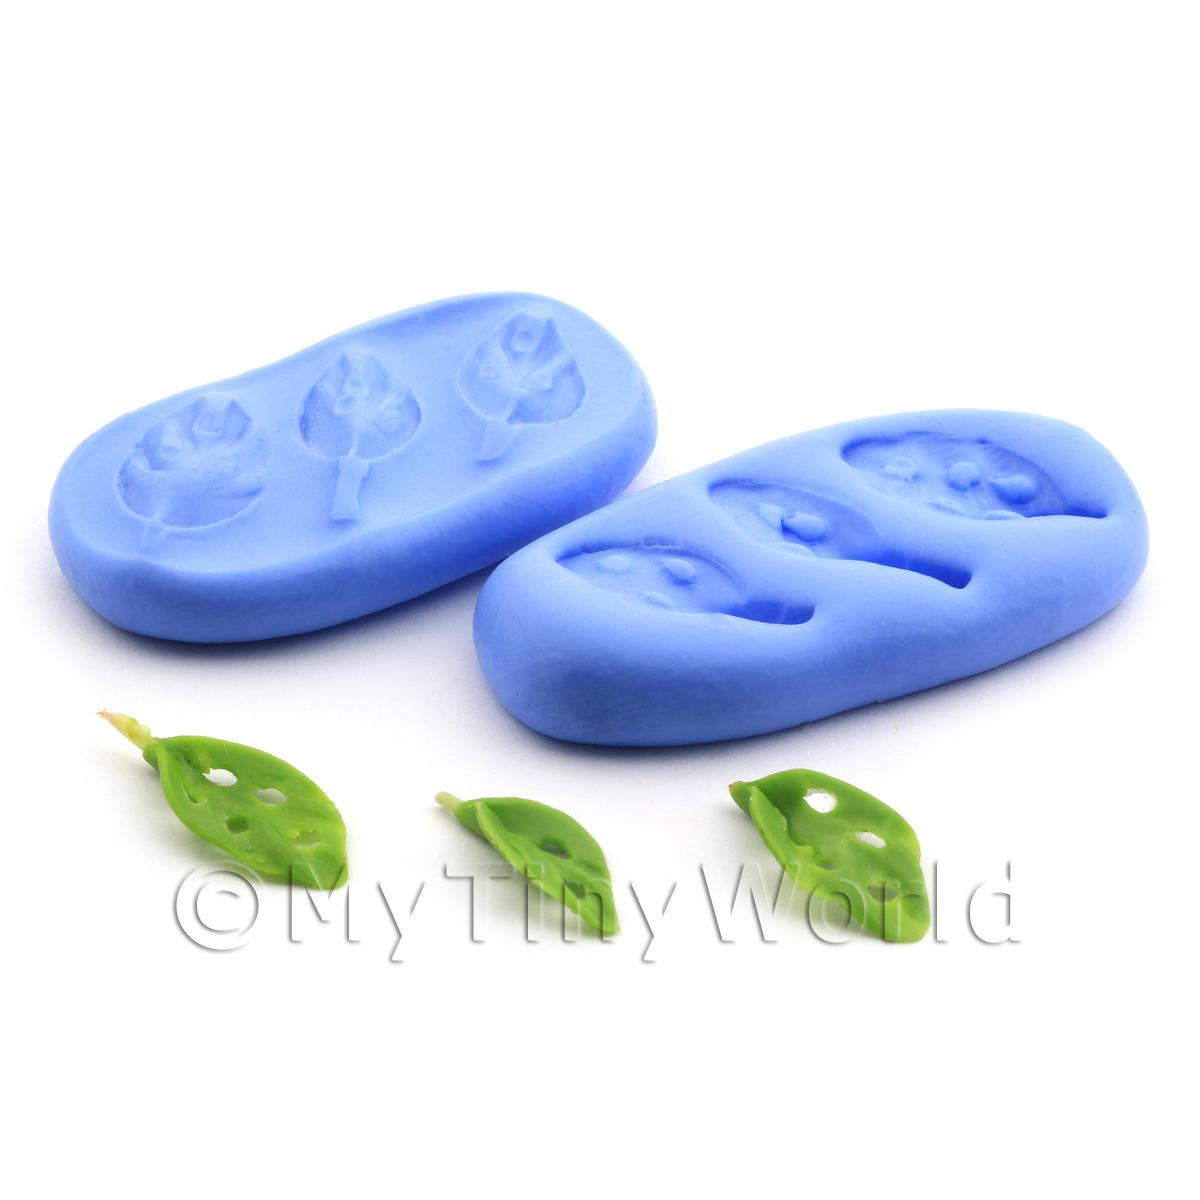 Dolls House Miniature 2 Part Cheese Plant Leaf Reusable Silicone Mould